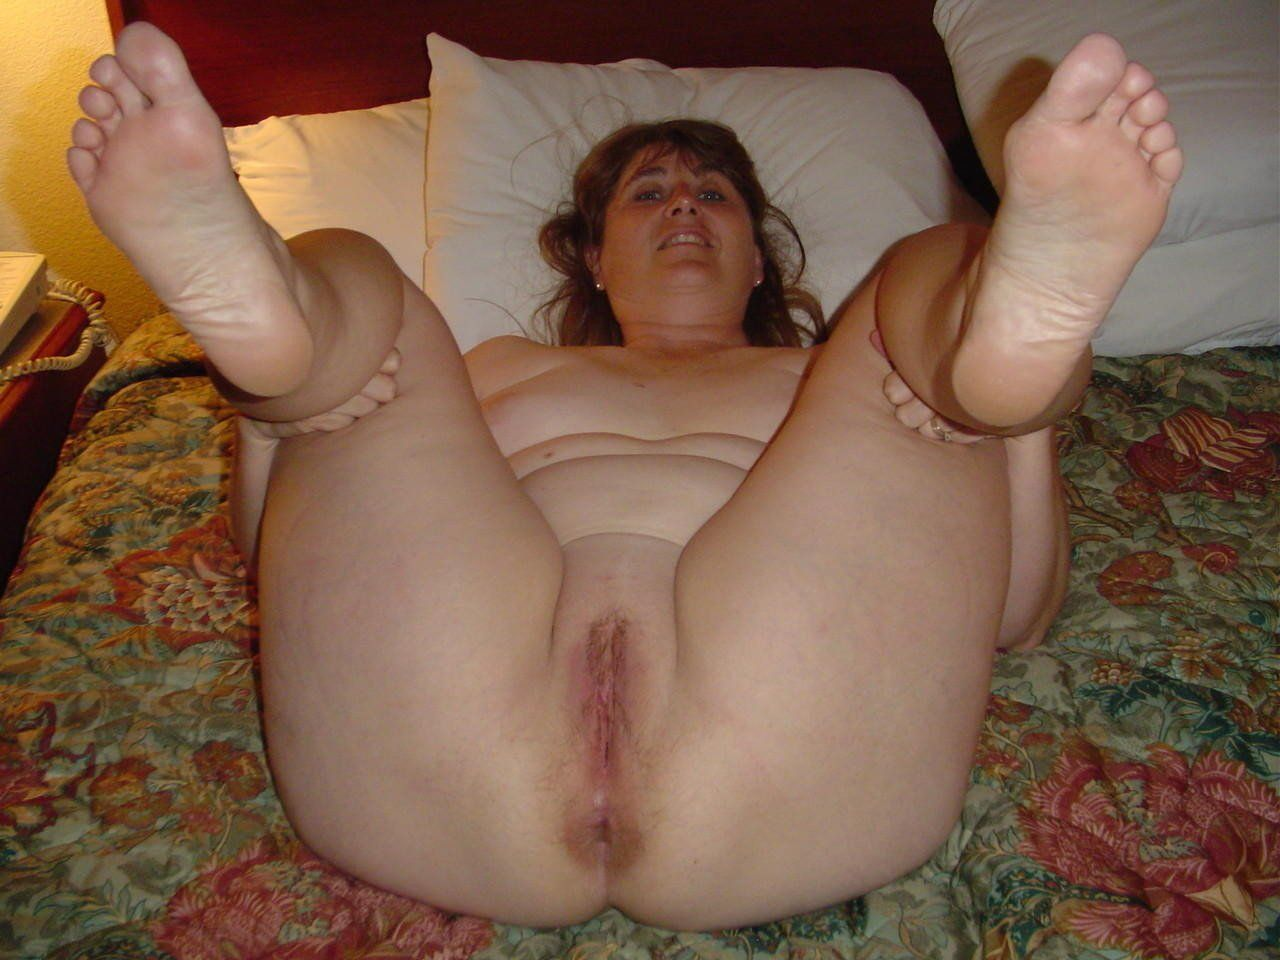 Anal feet amateur sex pictures